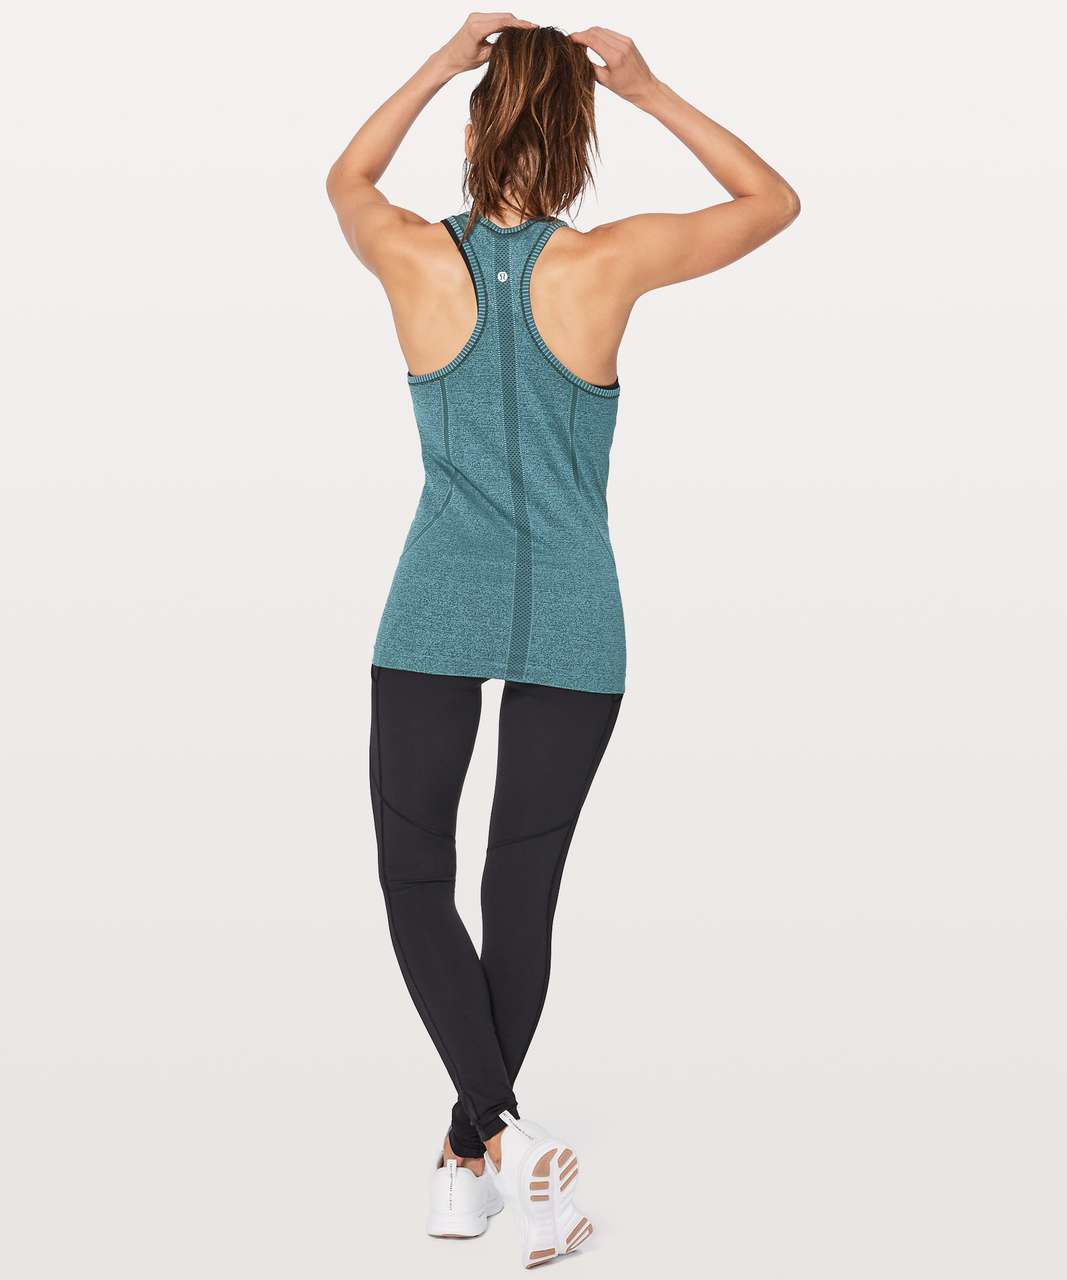 Lululemon Swiftly Tech Racerback - Black / Desert Teal